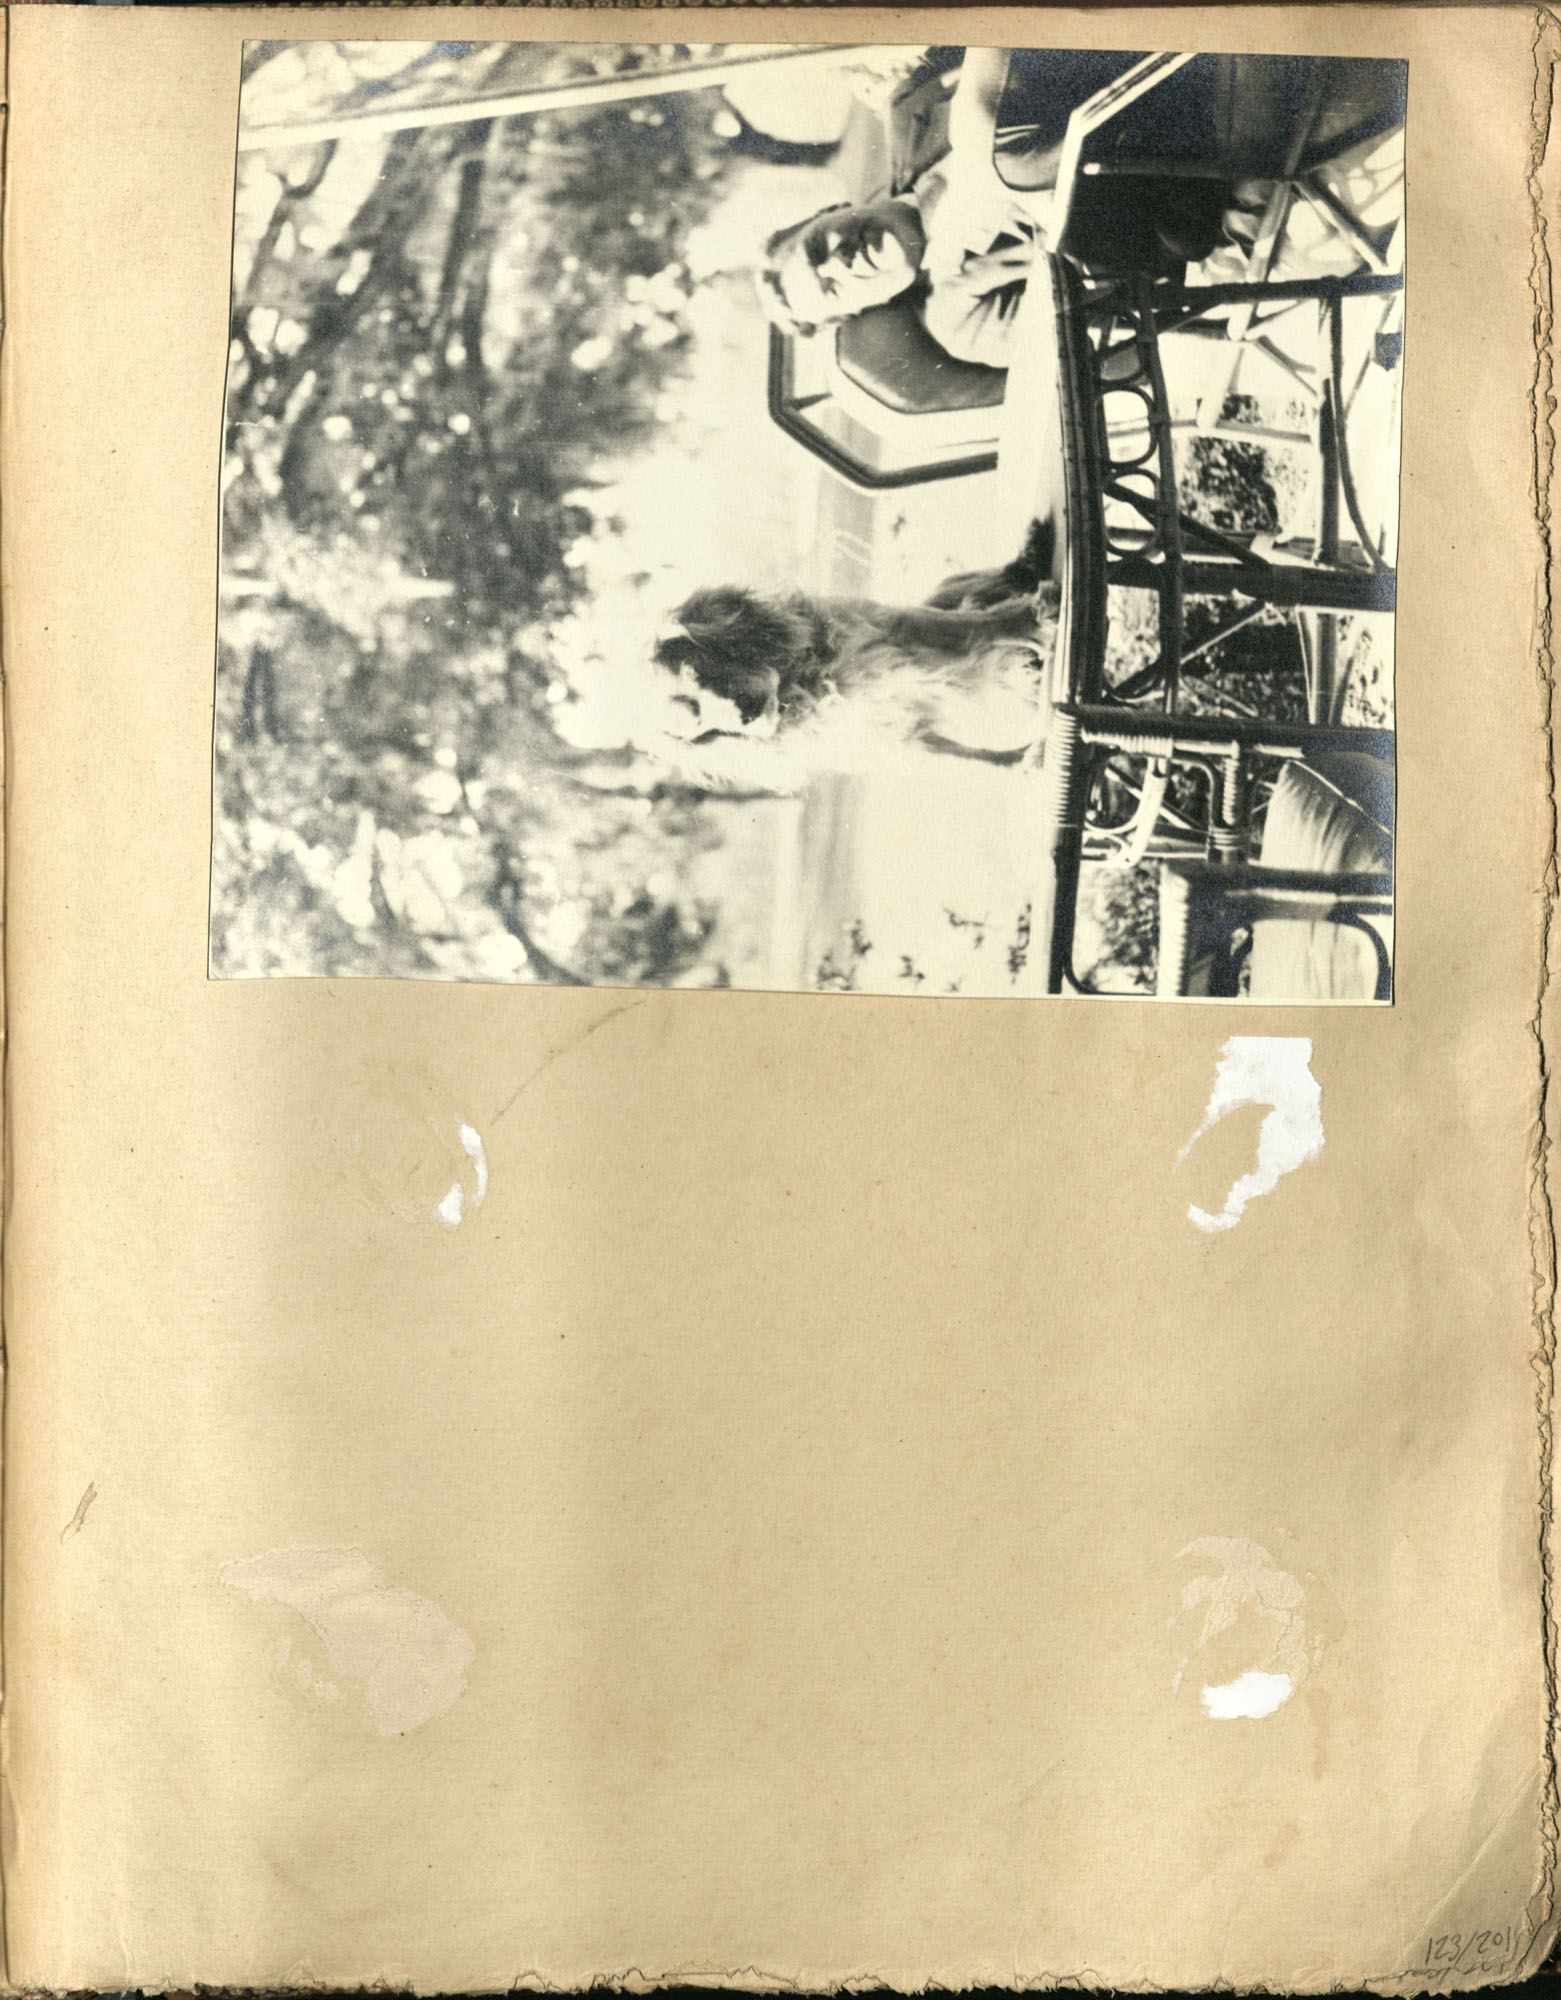 Early Medway and travels album, 1929-1937, page 123